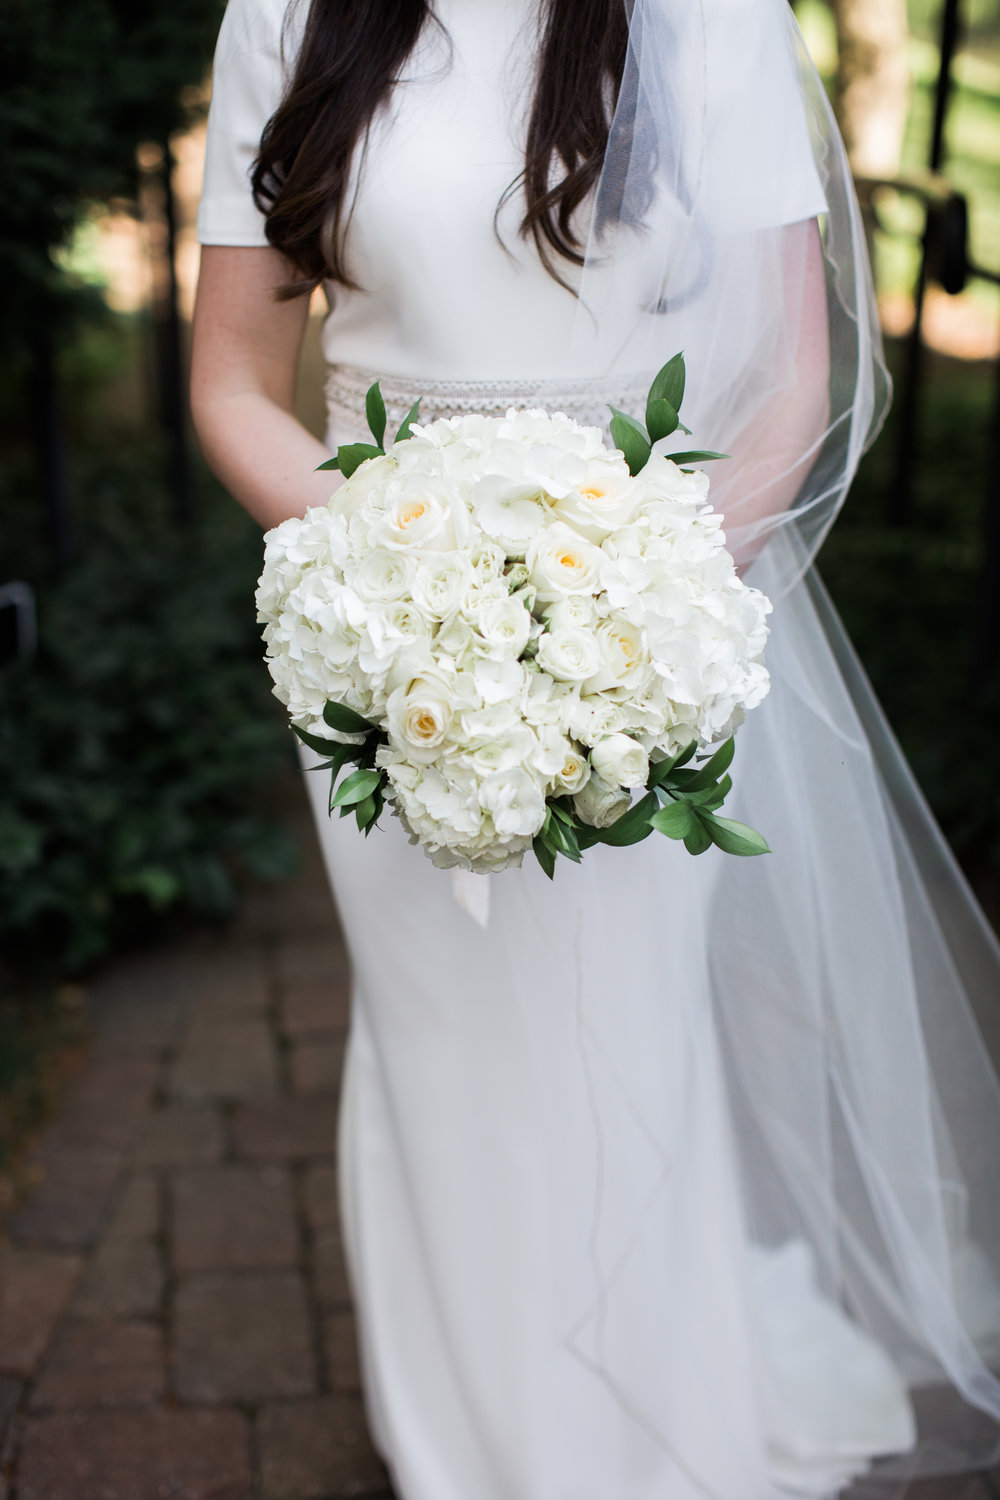 Katelyn_Wollet_Photography_Ann_Arbor_Wedding-75.jpg